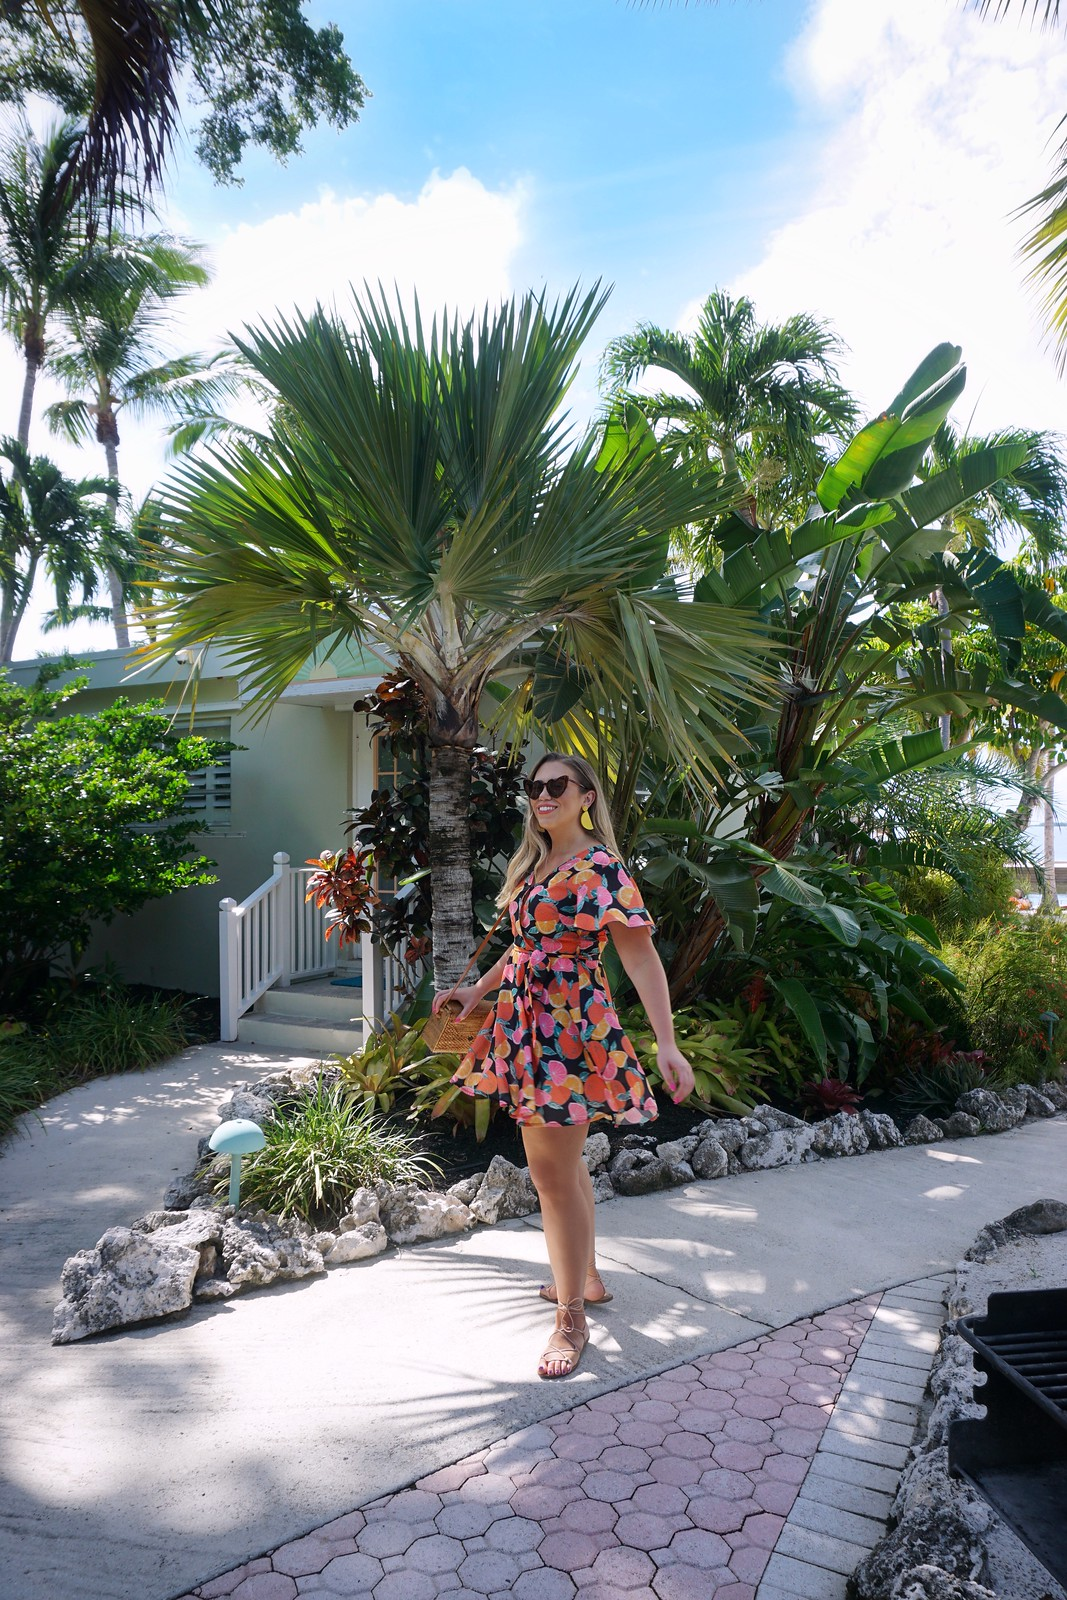 fruit-print-dress-ultimate-road-trip-5-days-florida-keys-itinerary-what-to-do-key-west-key-largo-islamorada-marathon-miami-vacation-guide